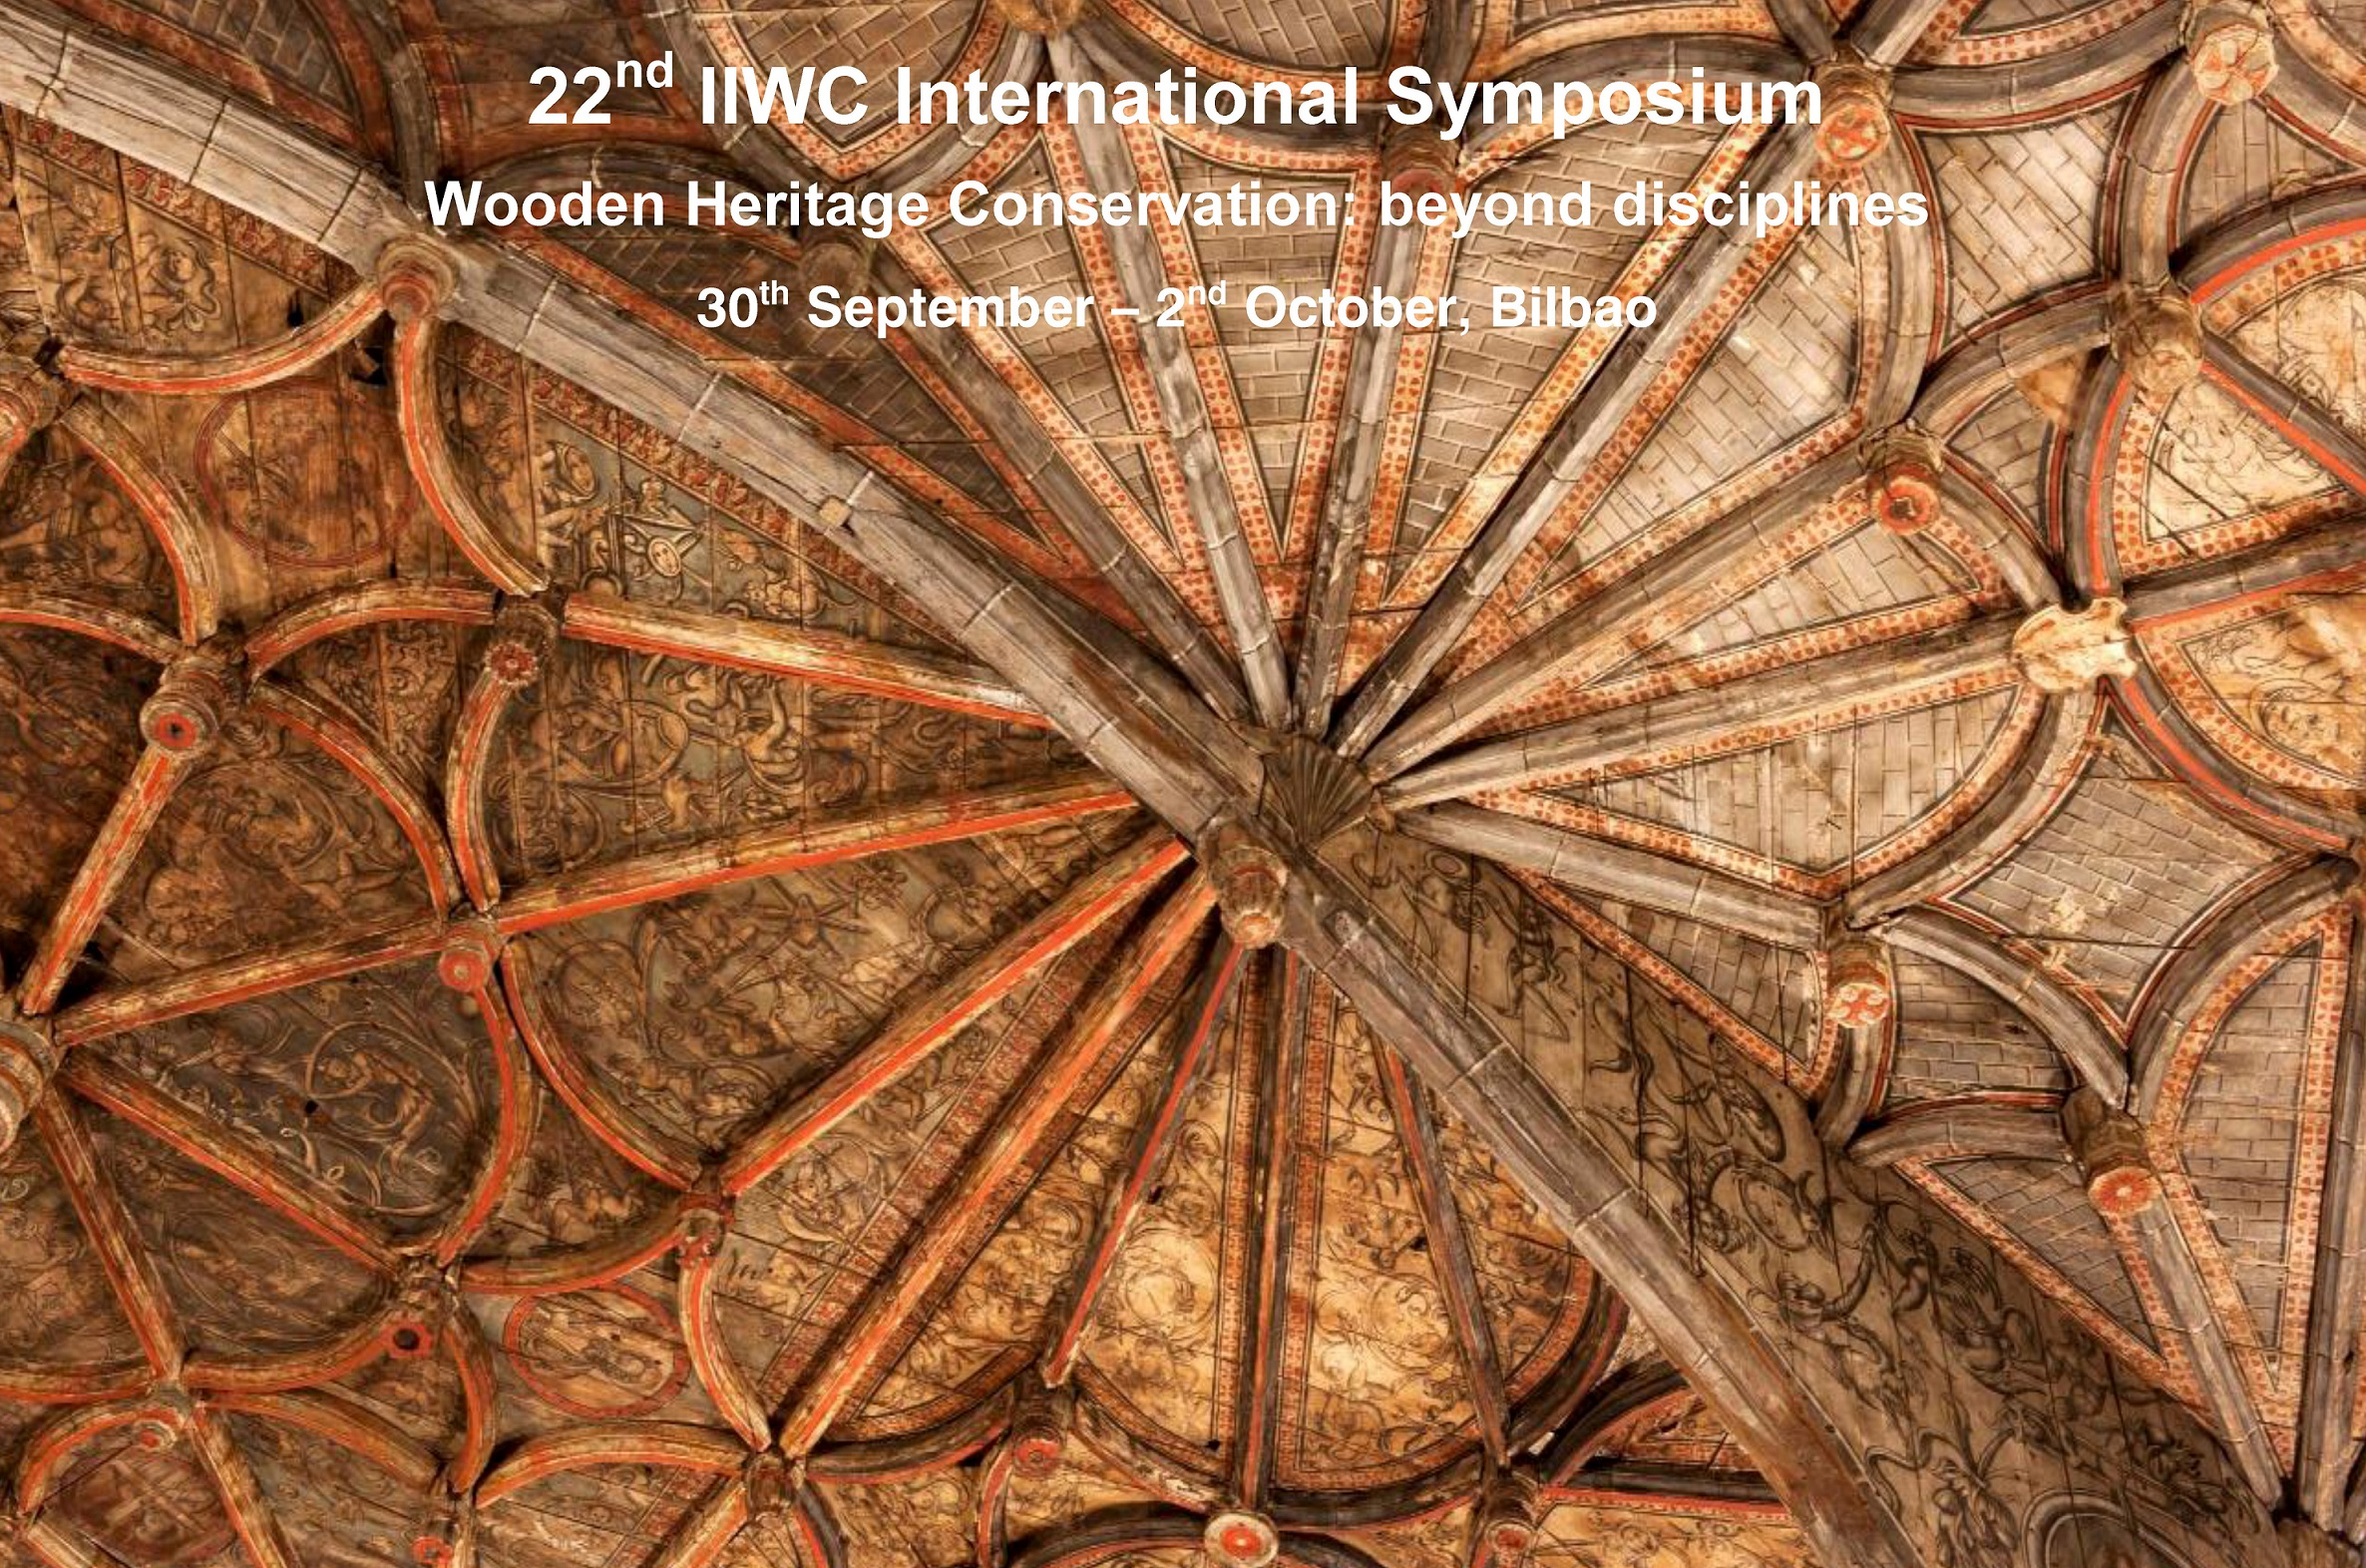 "22nd IIWC International Symposium ""Wooden heritage conservation: beyond disciplines"" , Bilbao & 1st IIWC Course on wooden heritage conservation, San Sebastian"